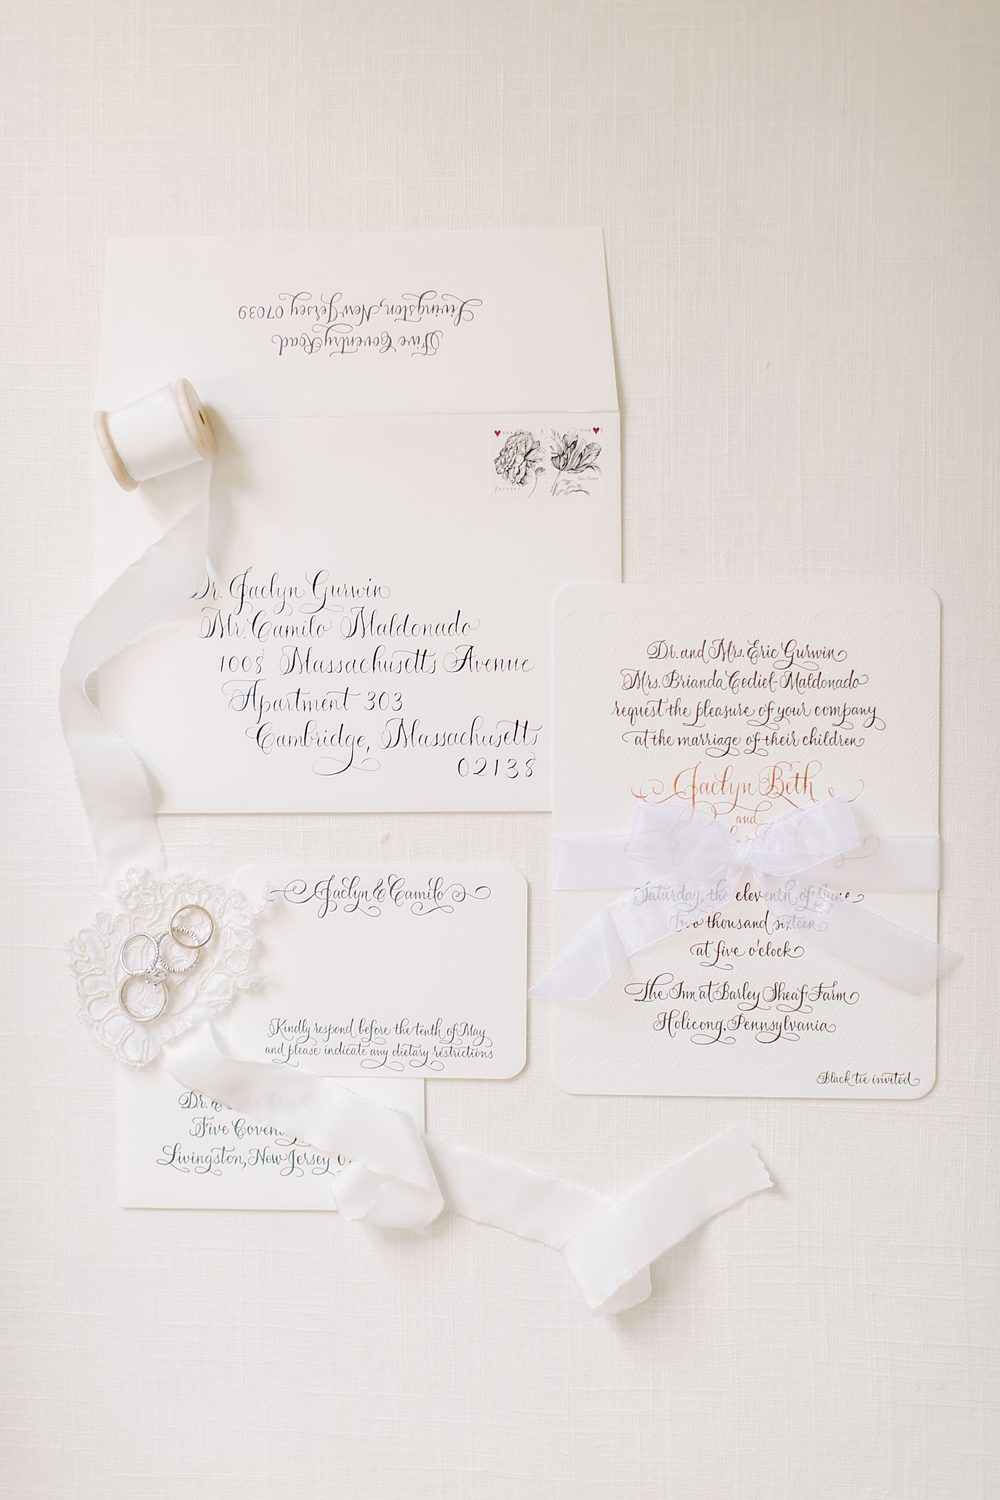 Calligraphy wedding invitations from Bella Figura | Real Bella Figura wedding